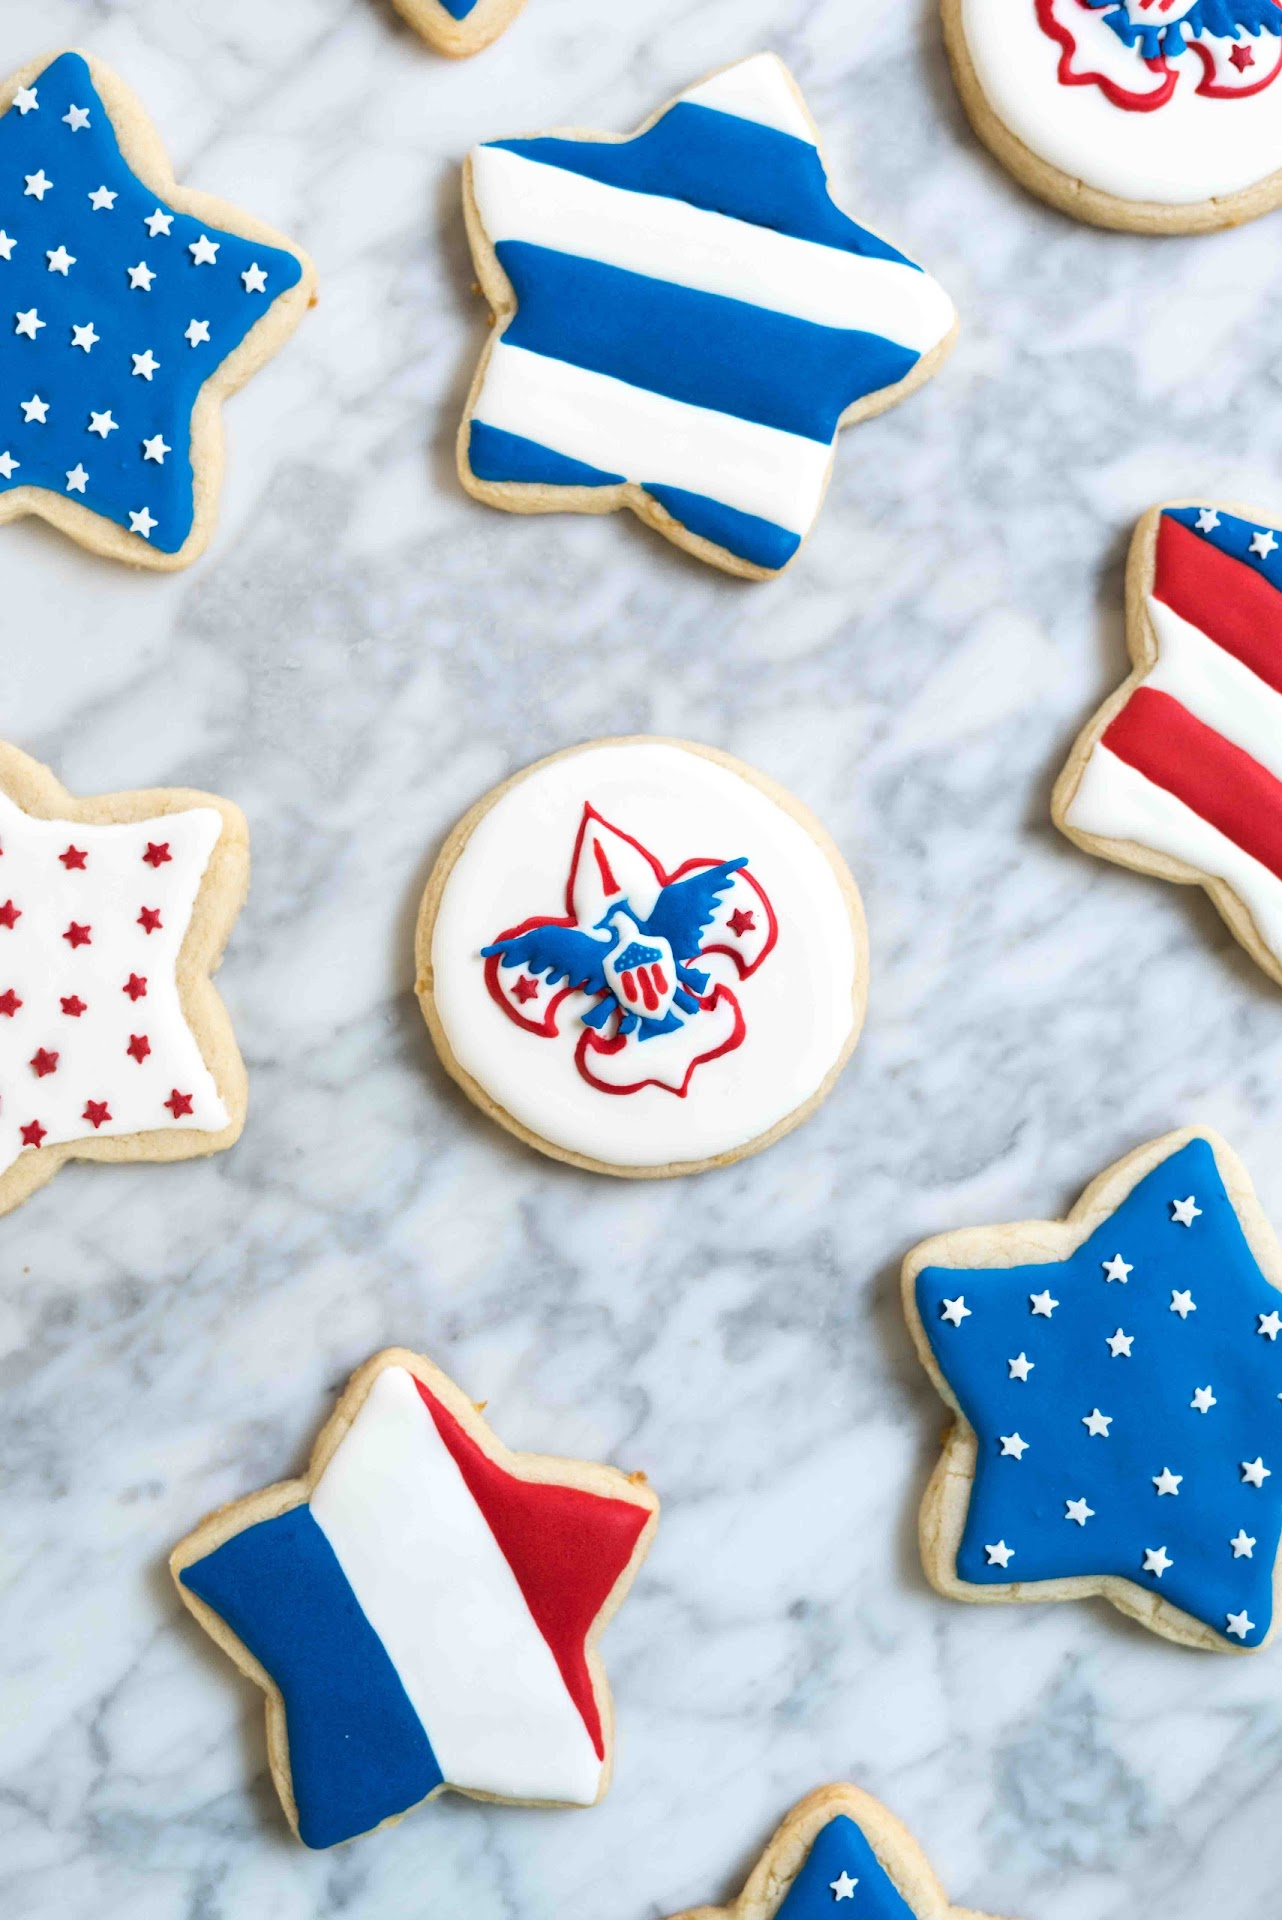 patriotic cookies, dessert, stars, cutout cookies, sugar cookies, lemon sugar cookies, best tasting sugar cookies, royal icing, tips, ideas, how to decorating sugar cookies, best royal icing, boy scout cookies, american eagle, usa, america, pretty sugar cookies, complicated, court of honor, american flag, flag cookies, 4th of july,